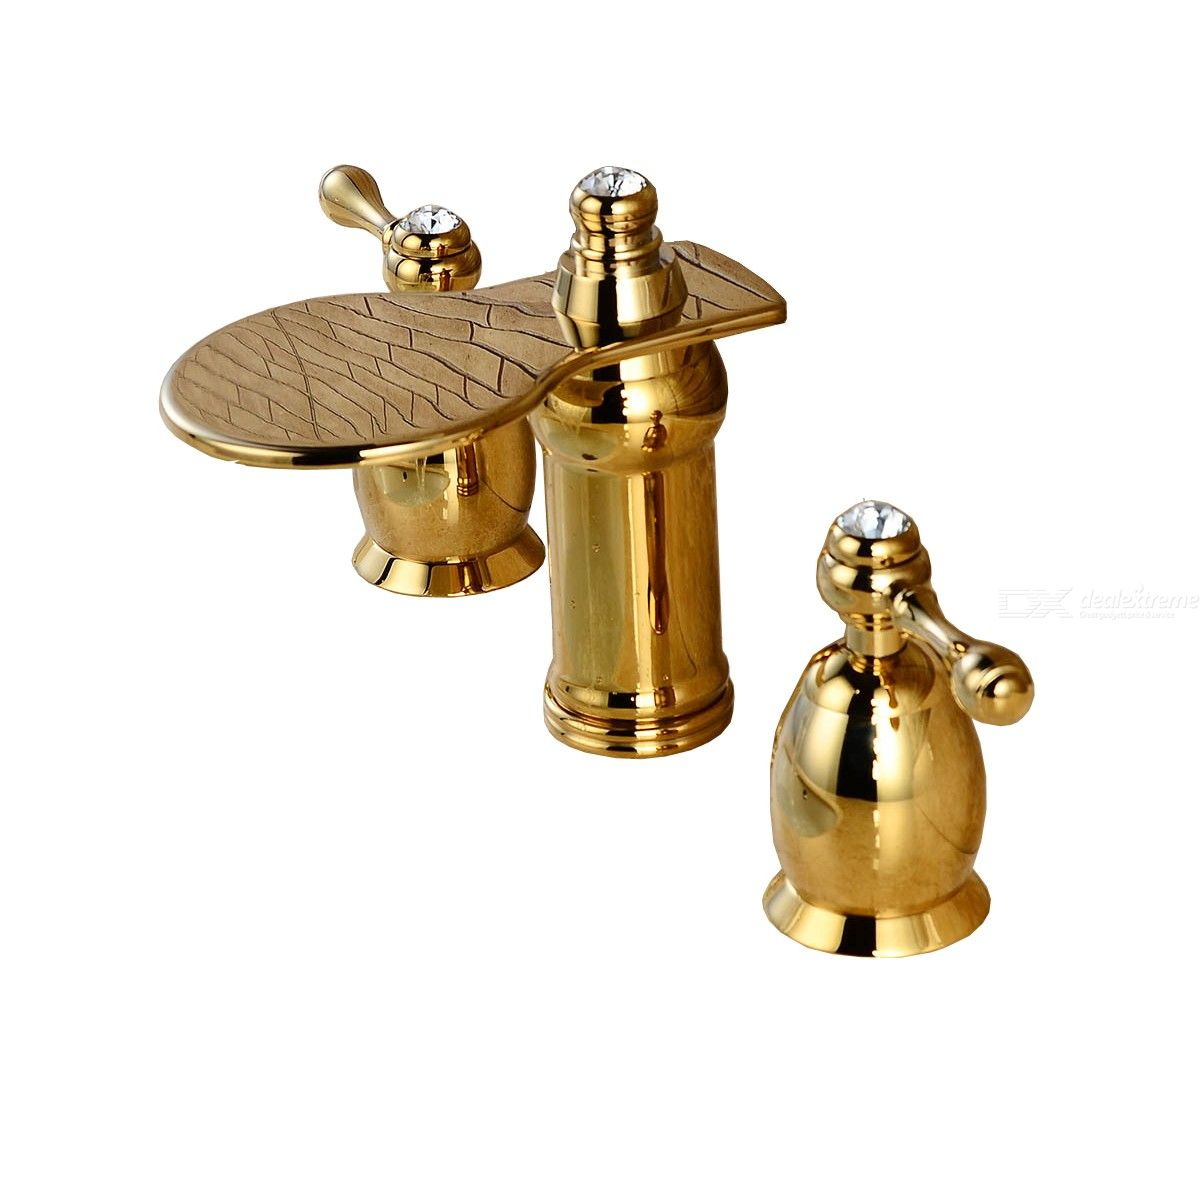 Special Price Bathroom Sink Faucet - Widespread Gold Two Handles Three Holes Bath Taps / Brass